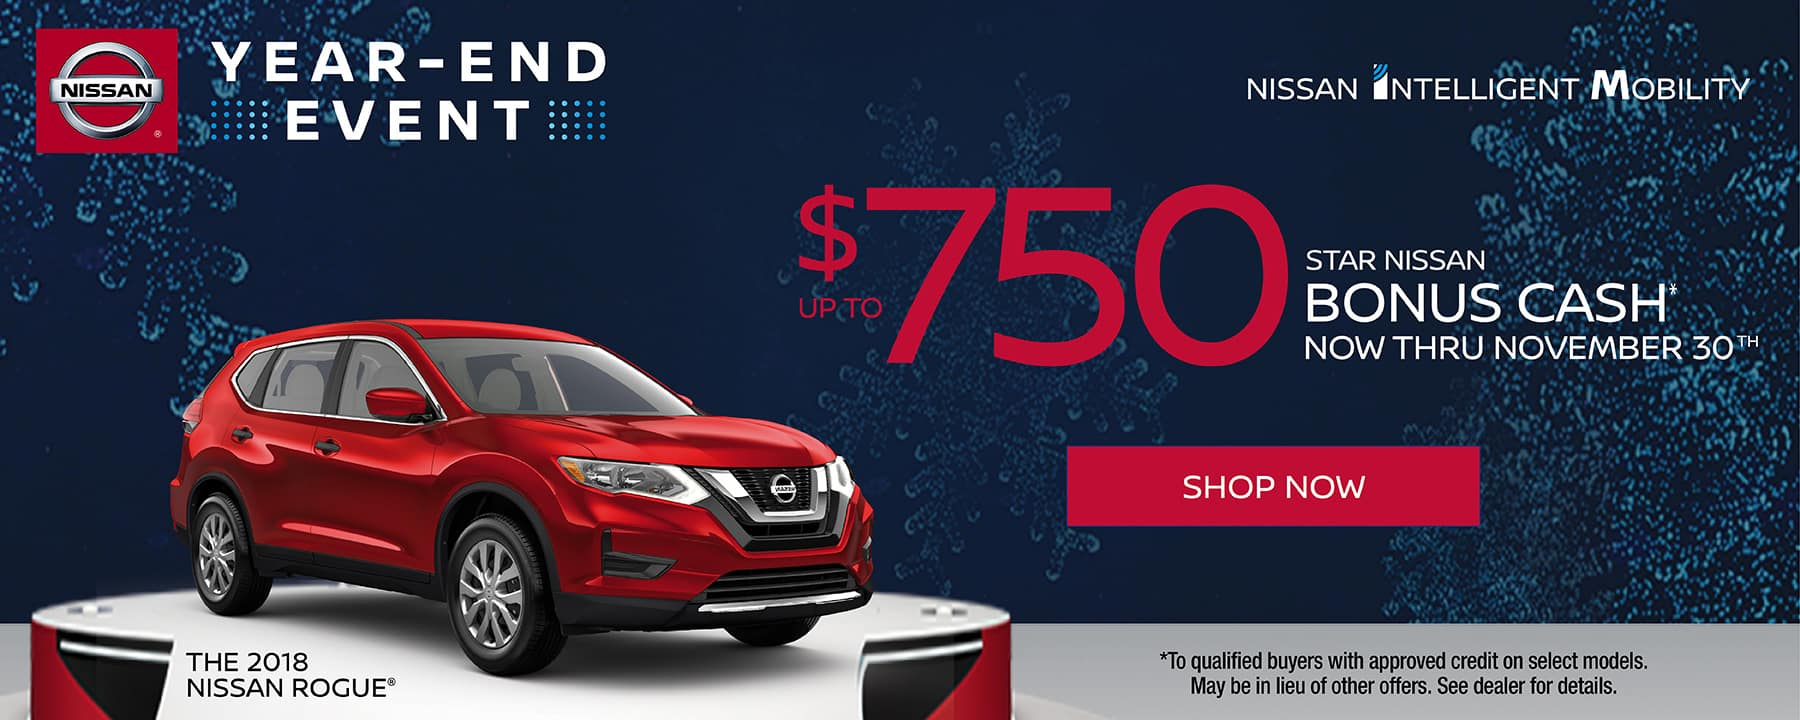 Get up to $750 Bonus Cash on the 2018 Nissan Rogue at Star Nissan!